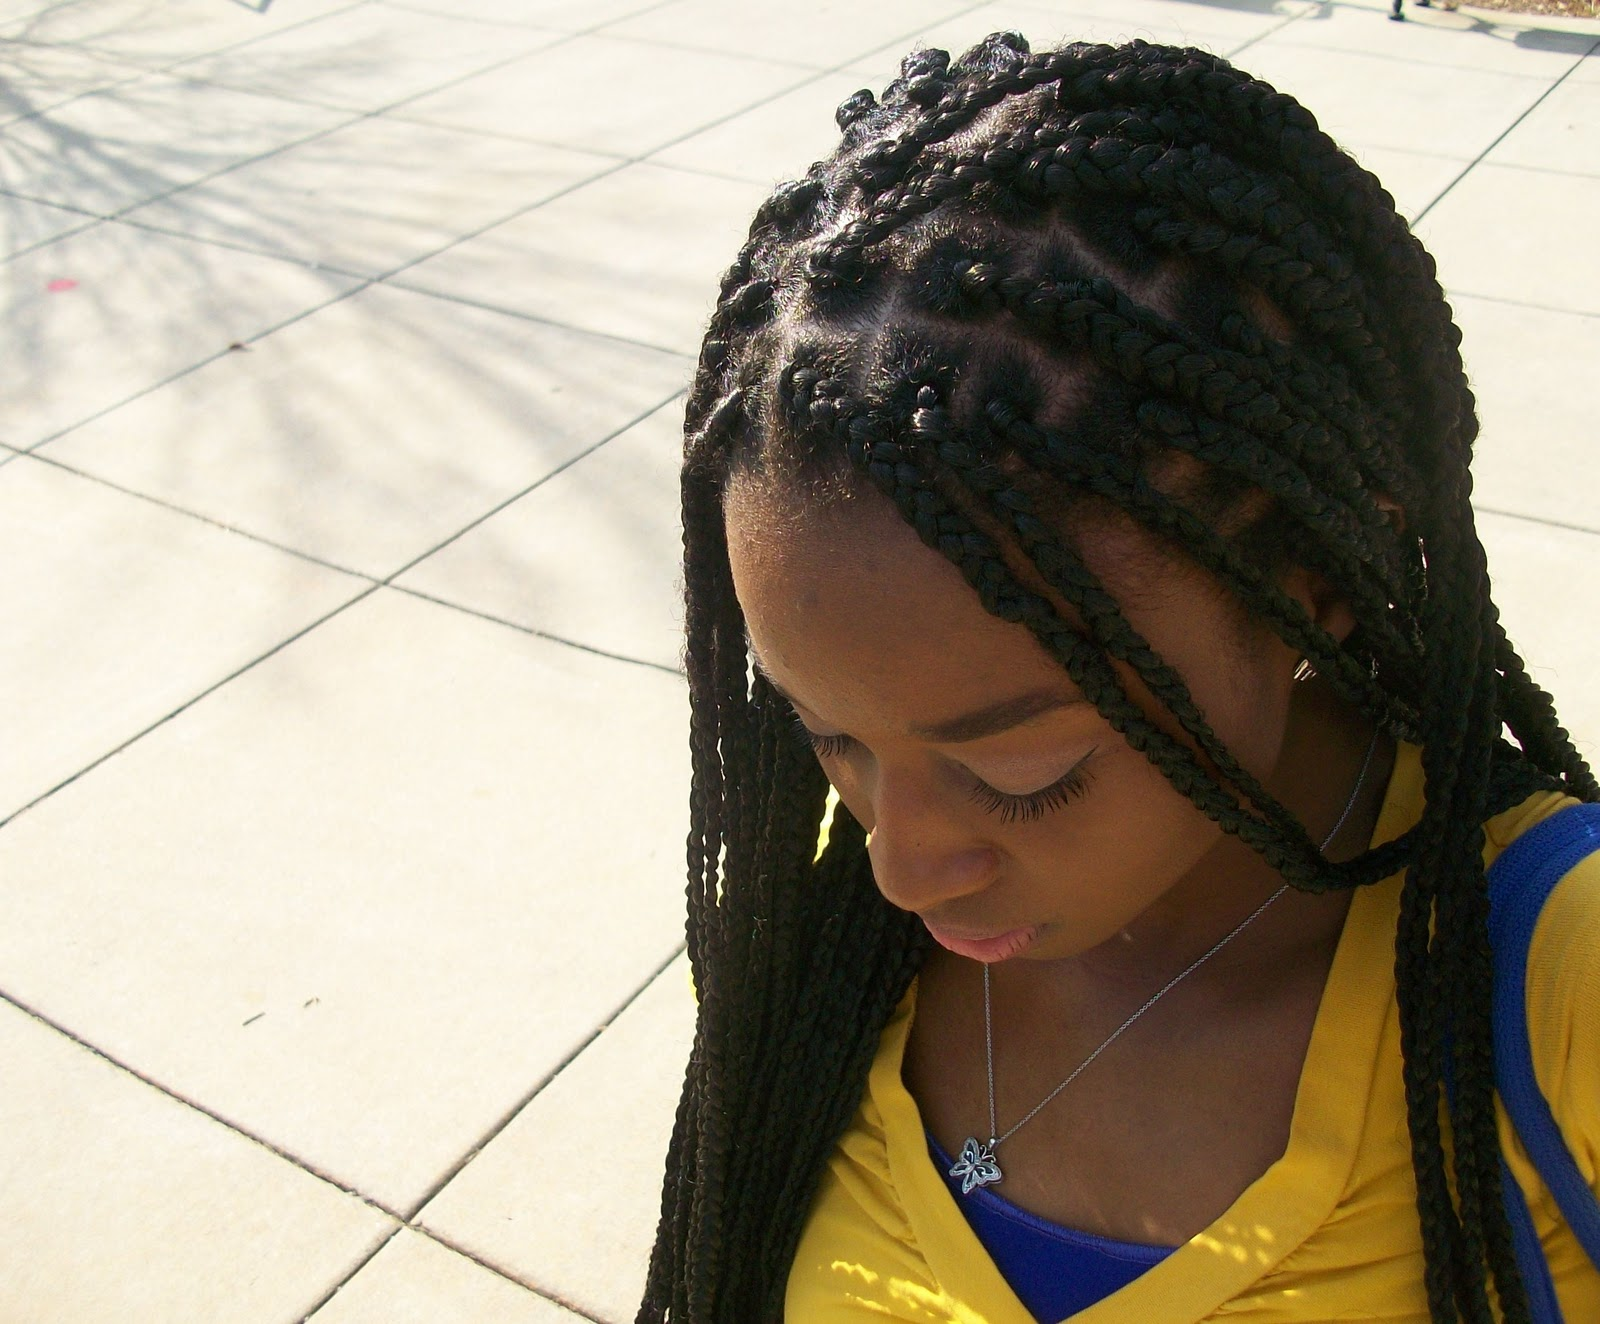 Hairstyles With Large Braids: 27 Big Braids Hairstyles For Women